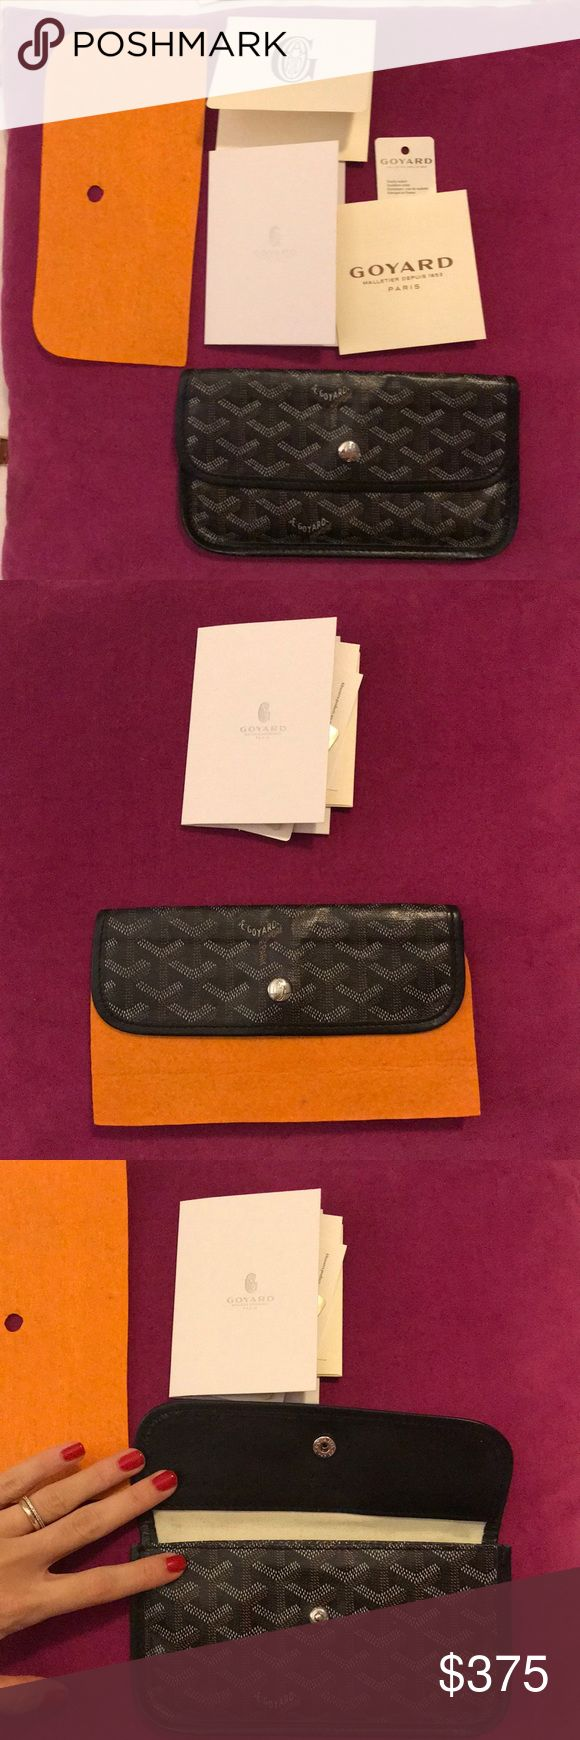 GOYARD Wallet/pouch Authentic, comes with everything in pictures. Less than a year old. Goyard Bags Wallets